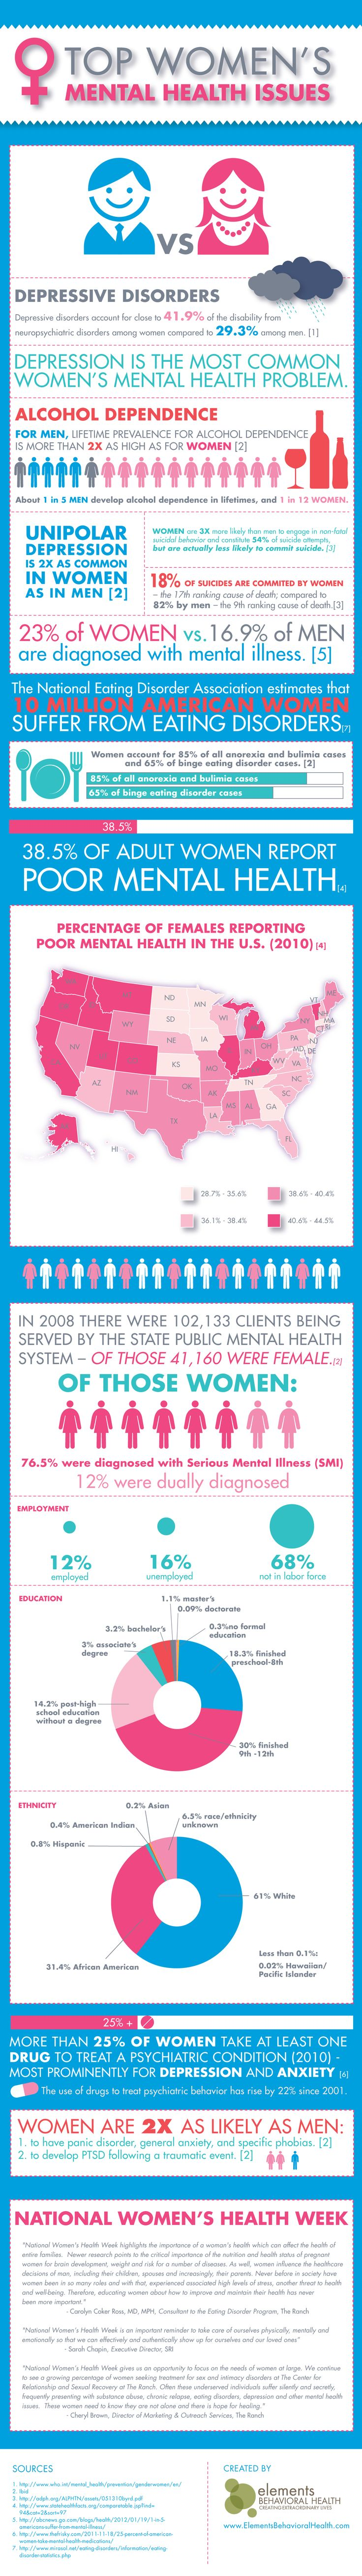 Women's Mental Health - - repinned by Private Practice from the Inside Out http://www.AllThingsPrivatePractice.com